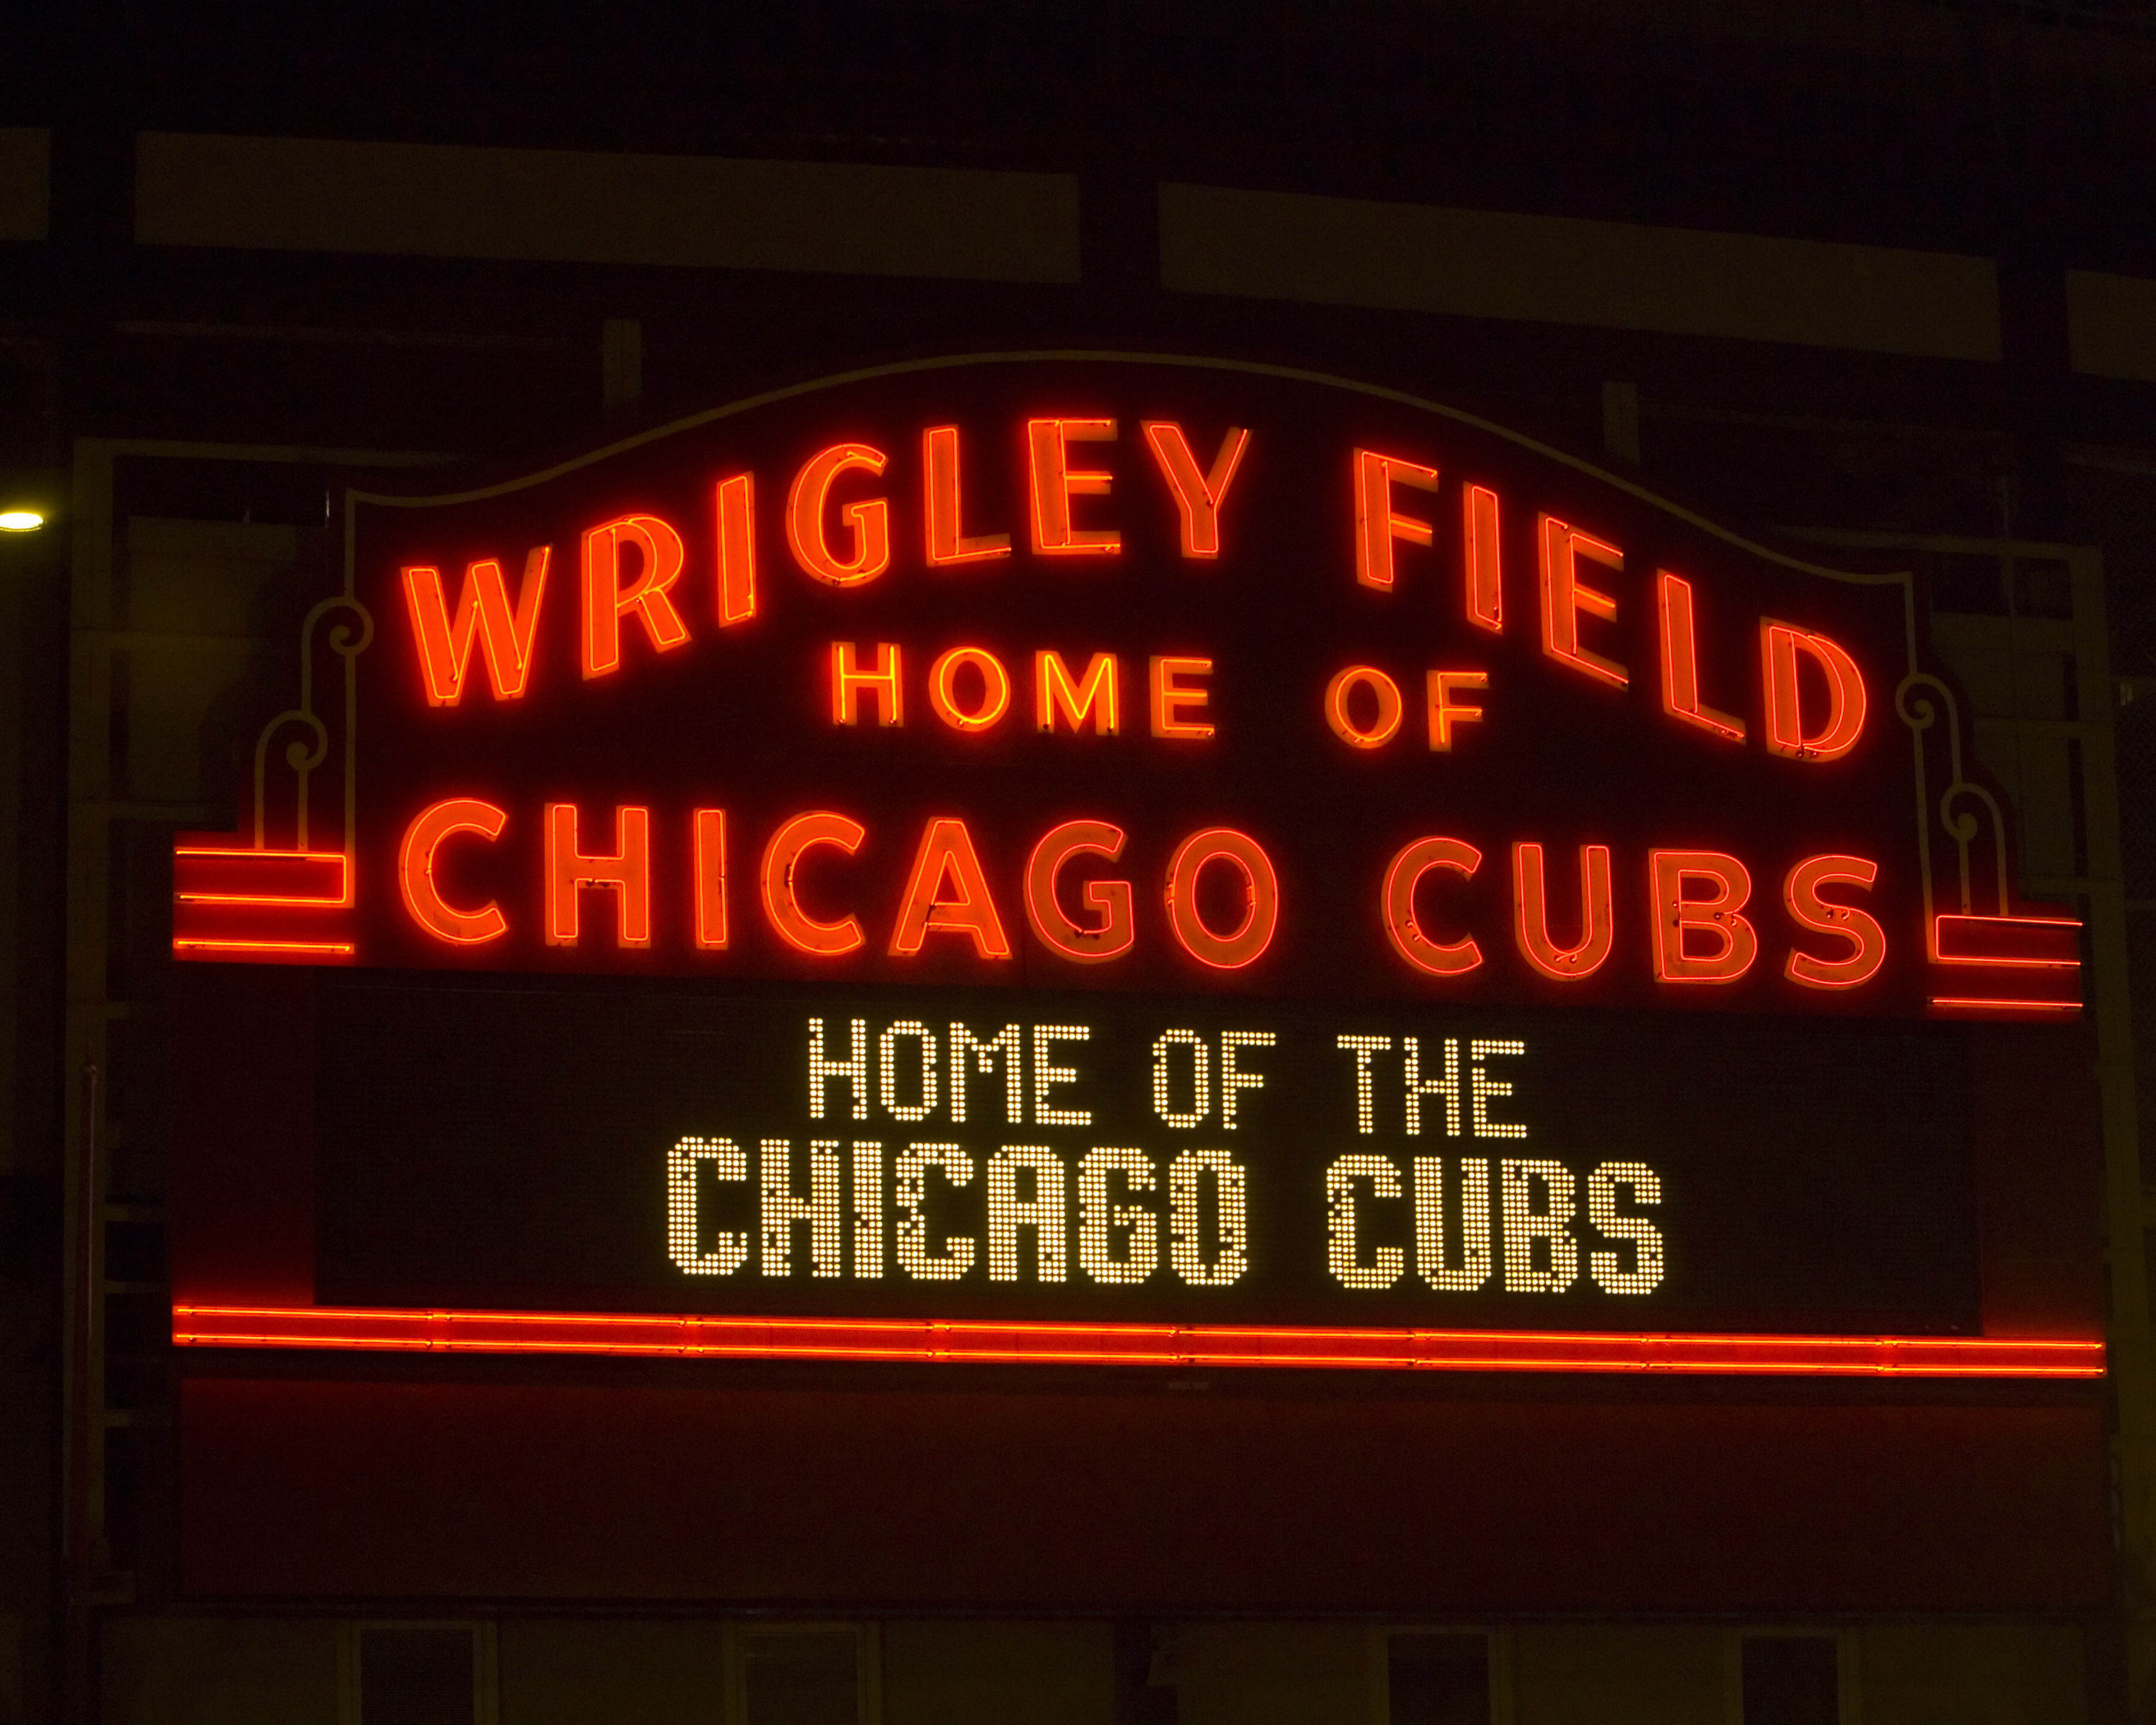 Chicago Cubs Introduce Lou Piniella as New Manager - October 17, 2006